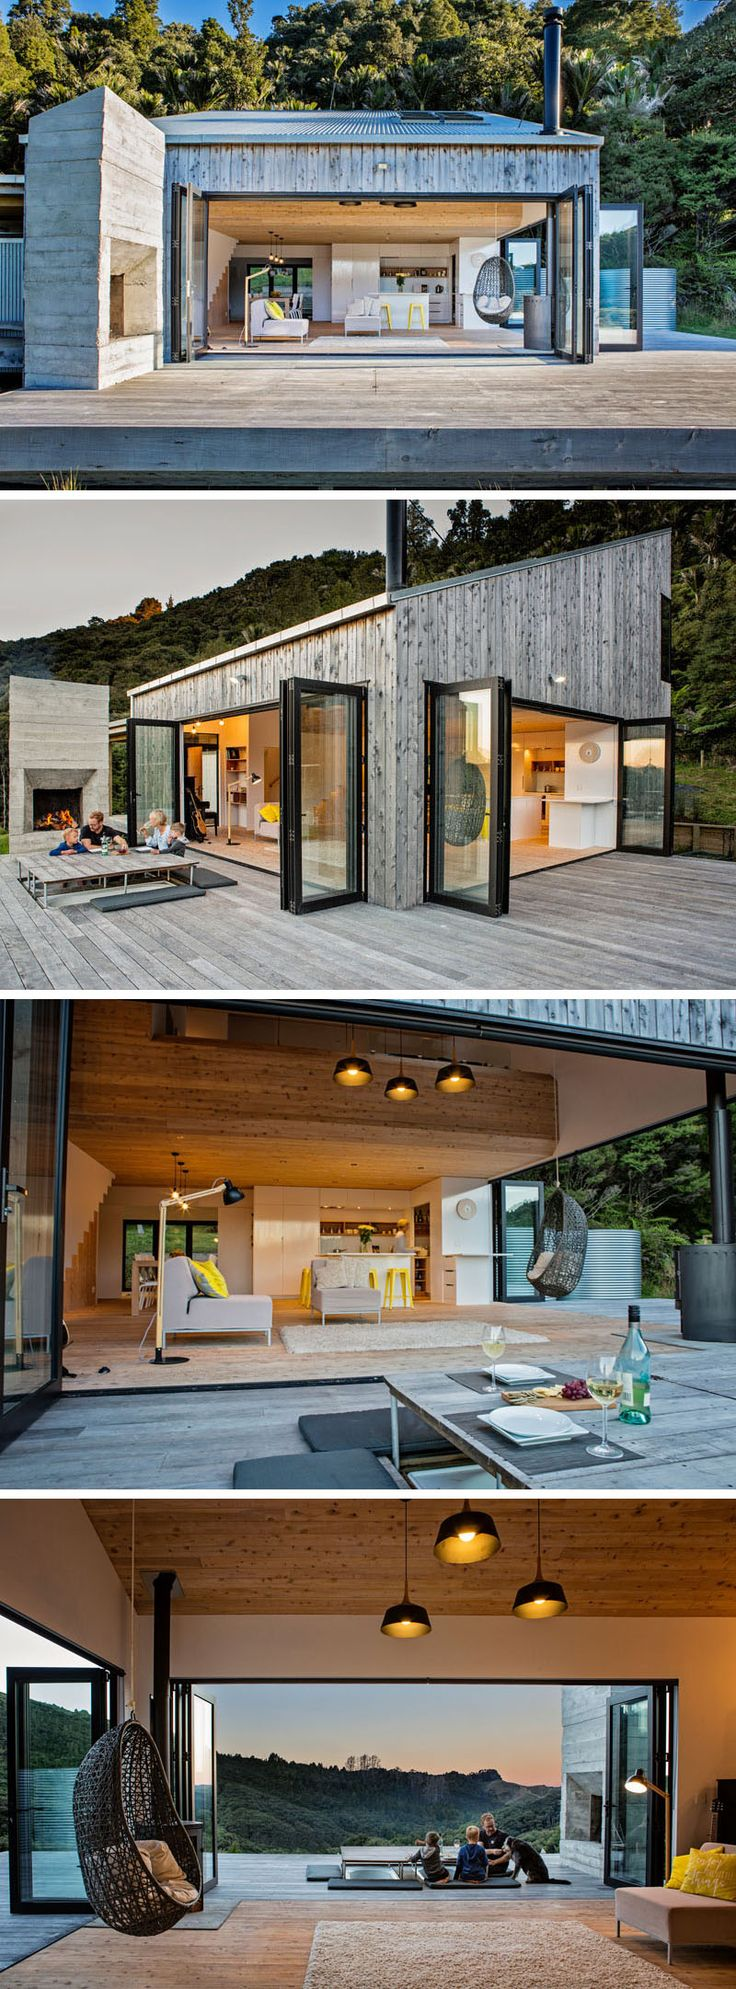 This modern house has sunken bathtubs in the deck, while the cover for the bathtubs can be raised to become an outdoor dining table. #OutdoorSpace #SunkenBathtub #ModernHouse #Deck #OurdoorDining